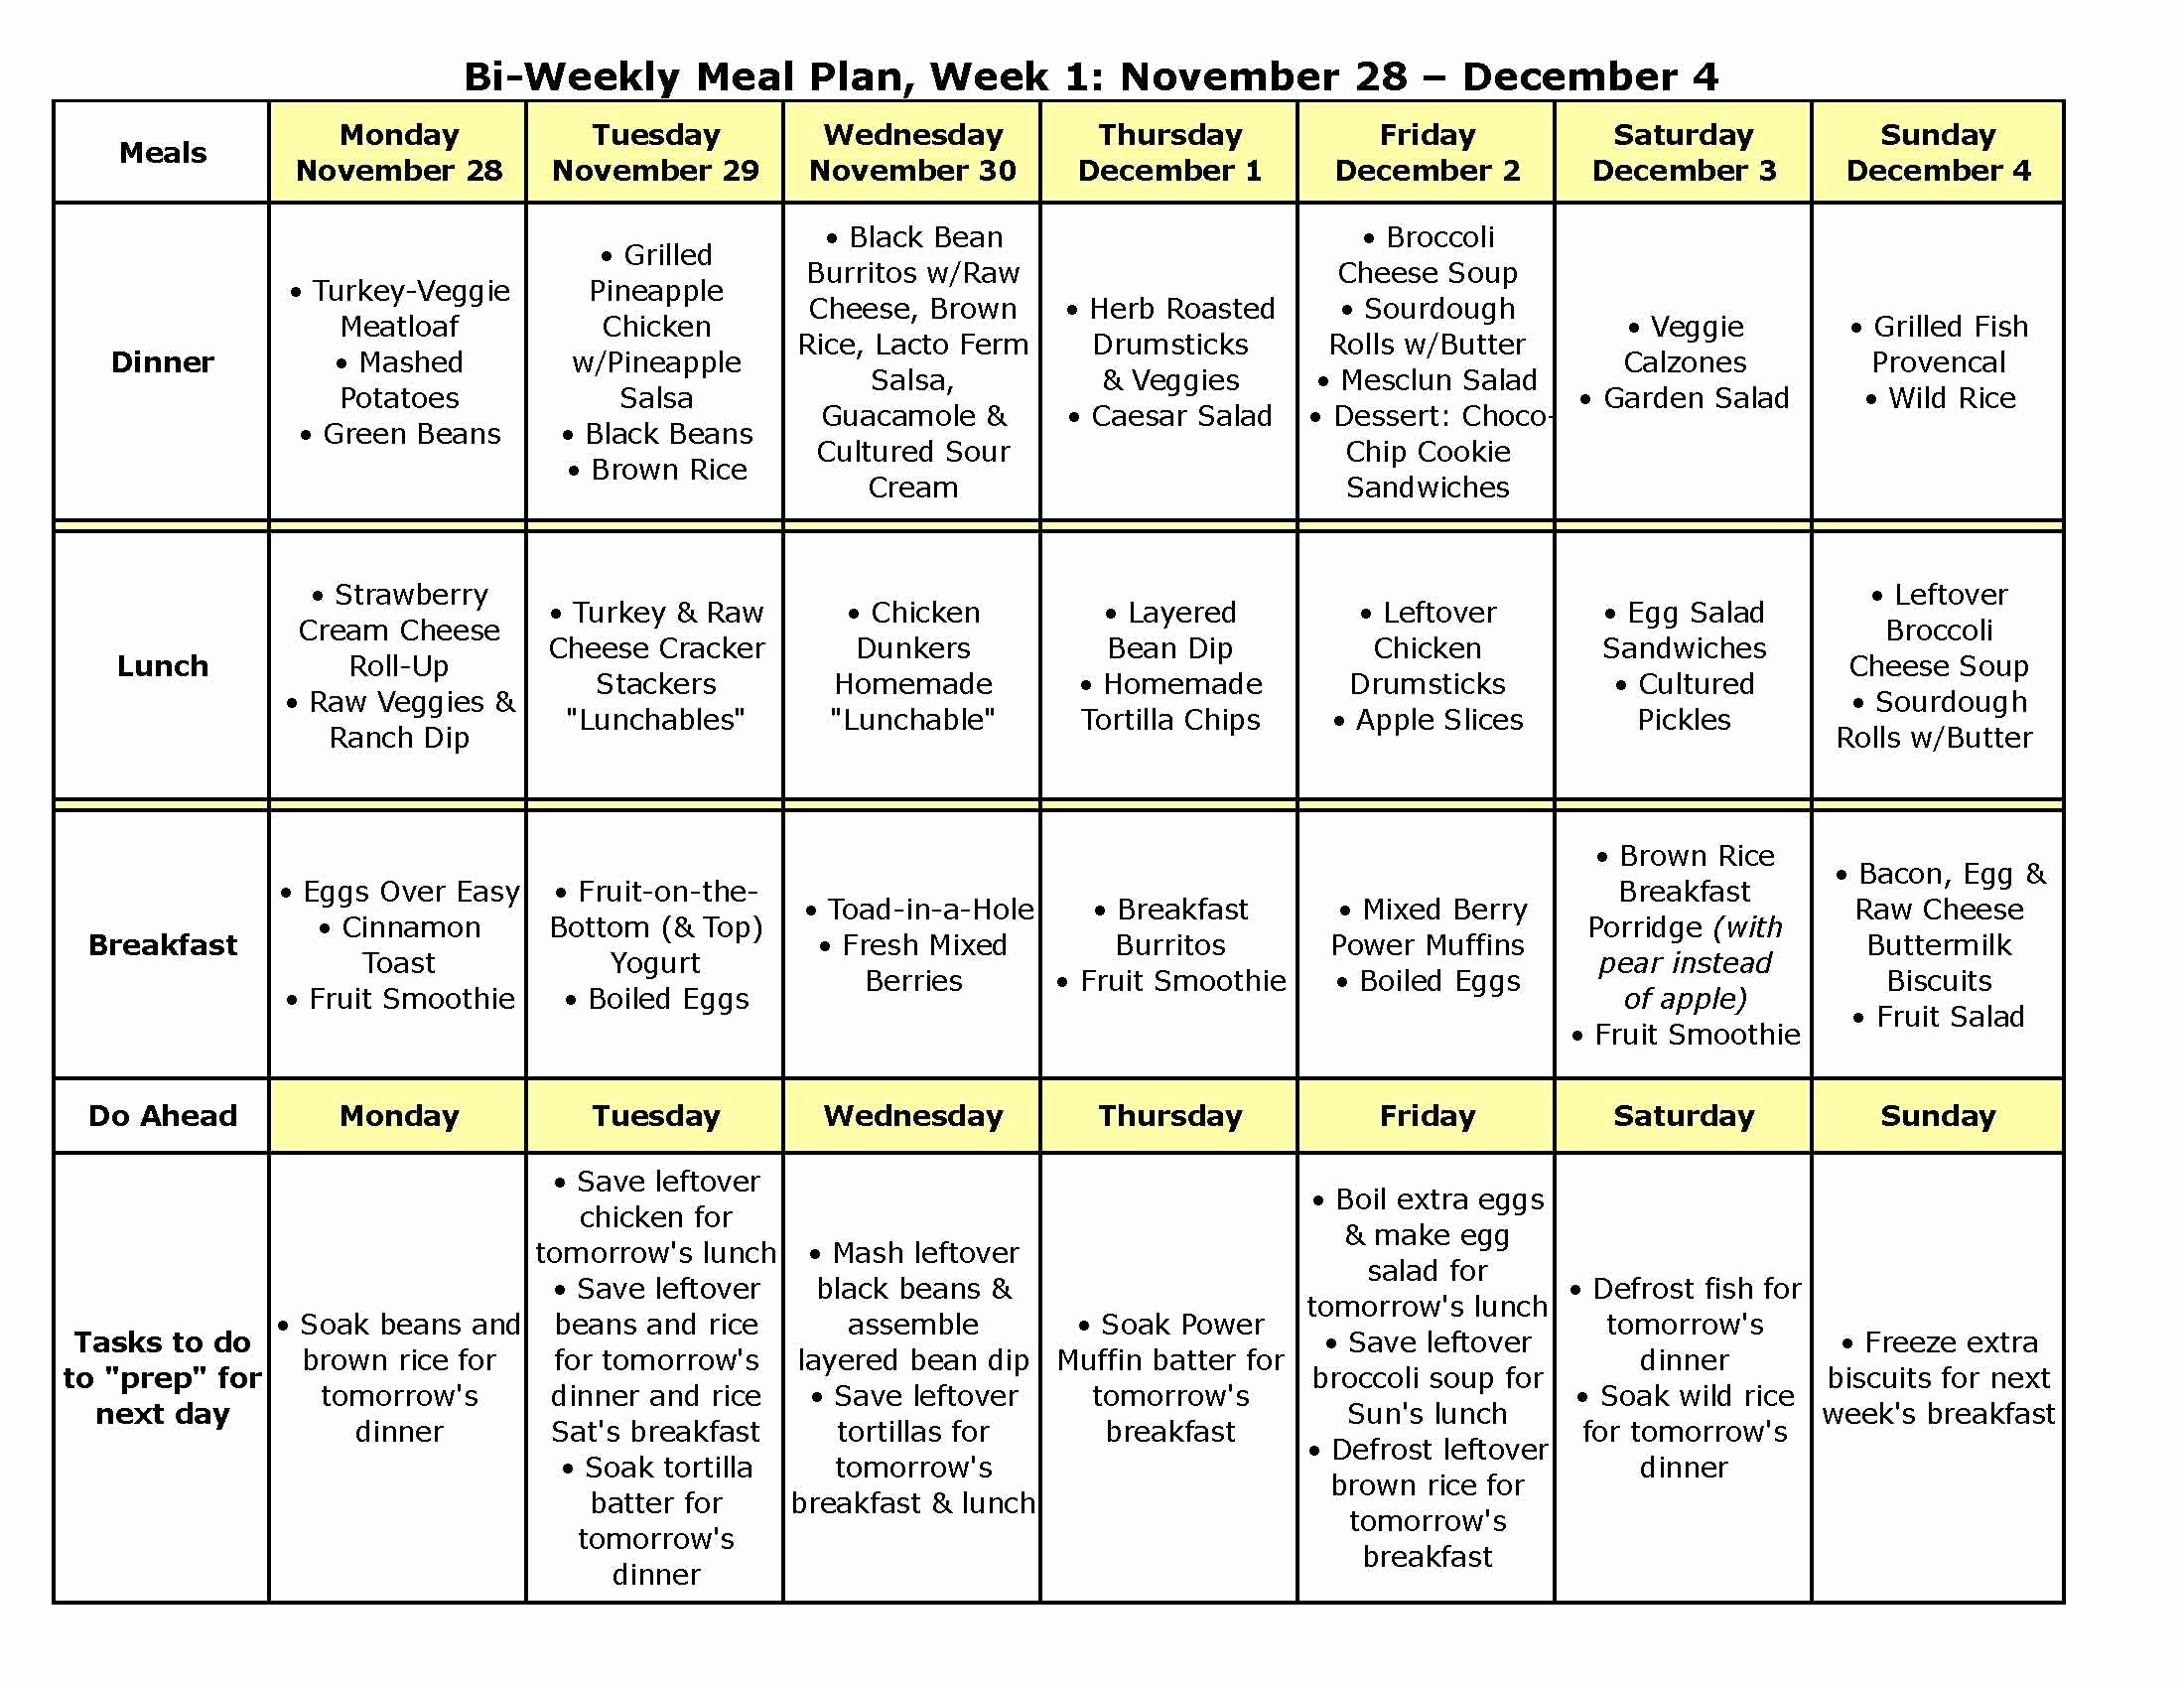 Monthly Meal Plan Template Inspirational Bi Weekly Meal Plan 9a Has Recipes too